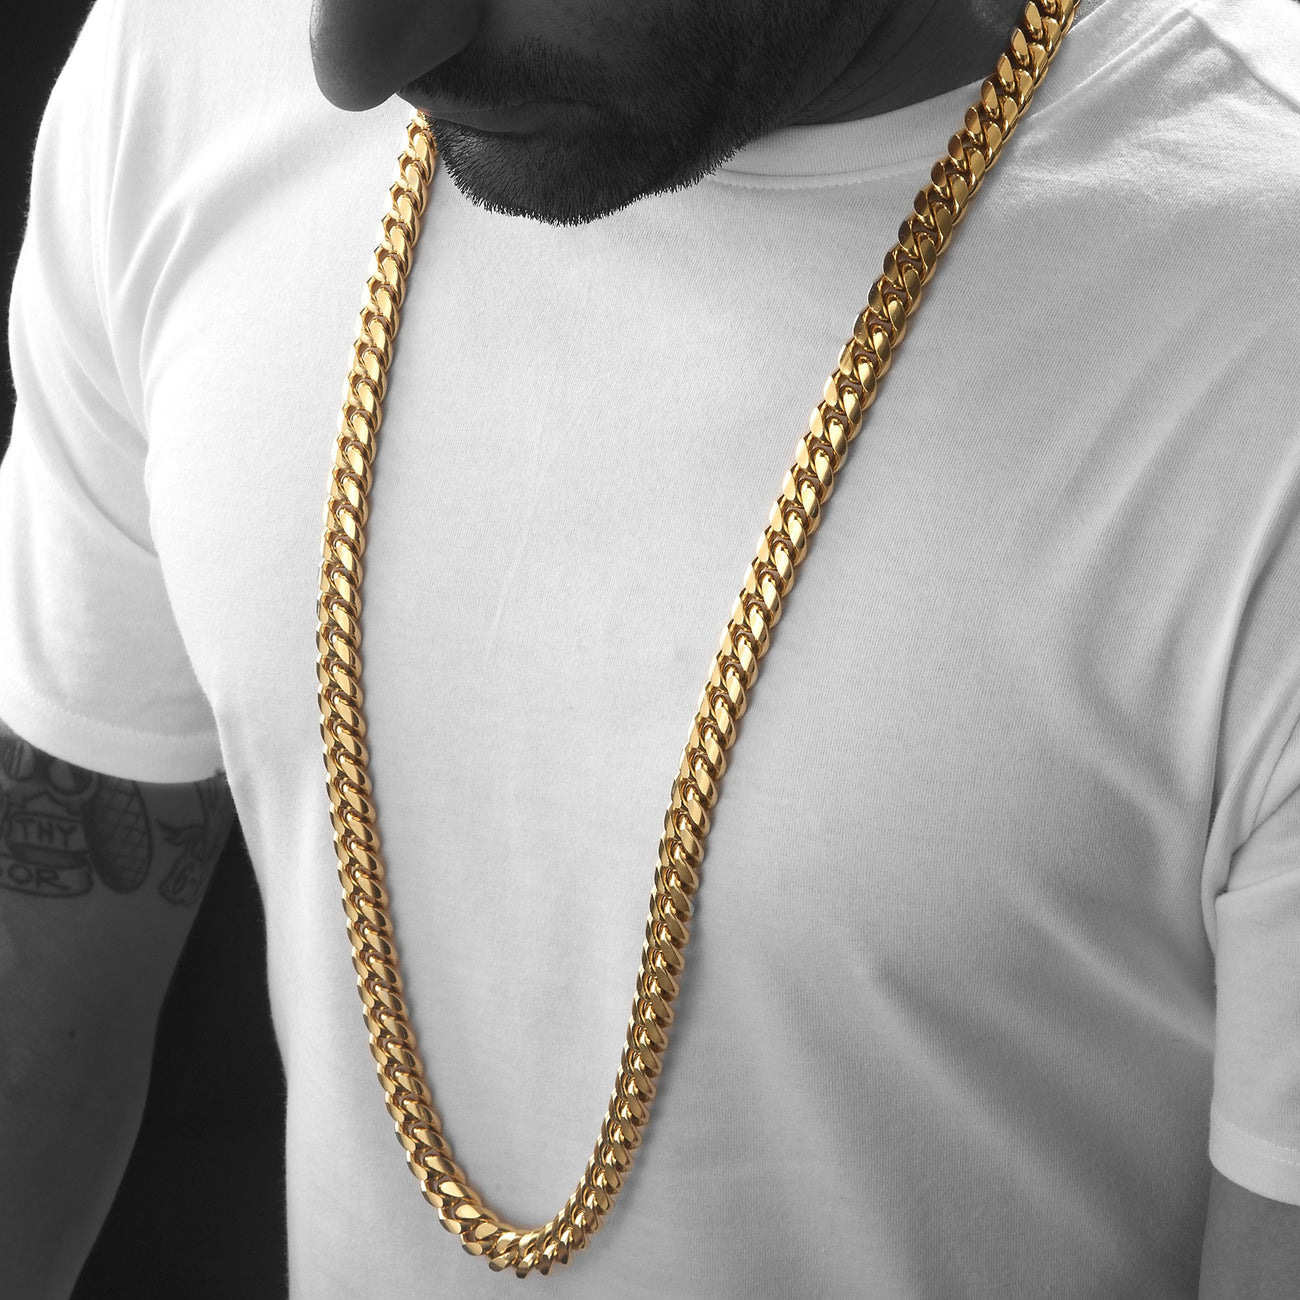 Heavy 12mm Miami Cuban Link Chain , Chains, SpicyIce - 1